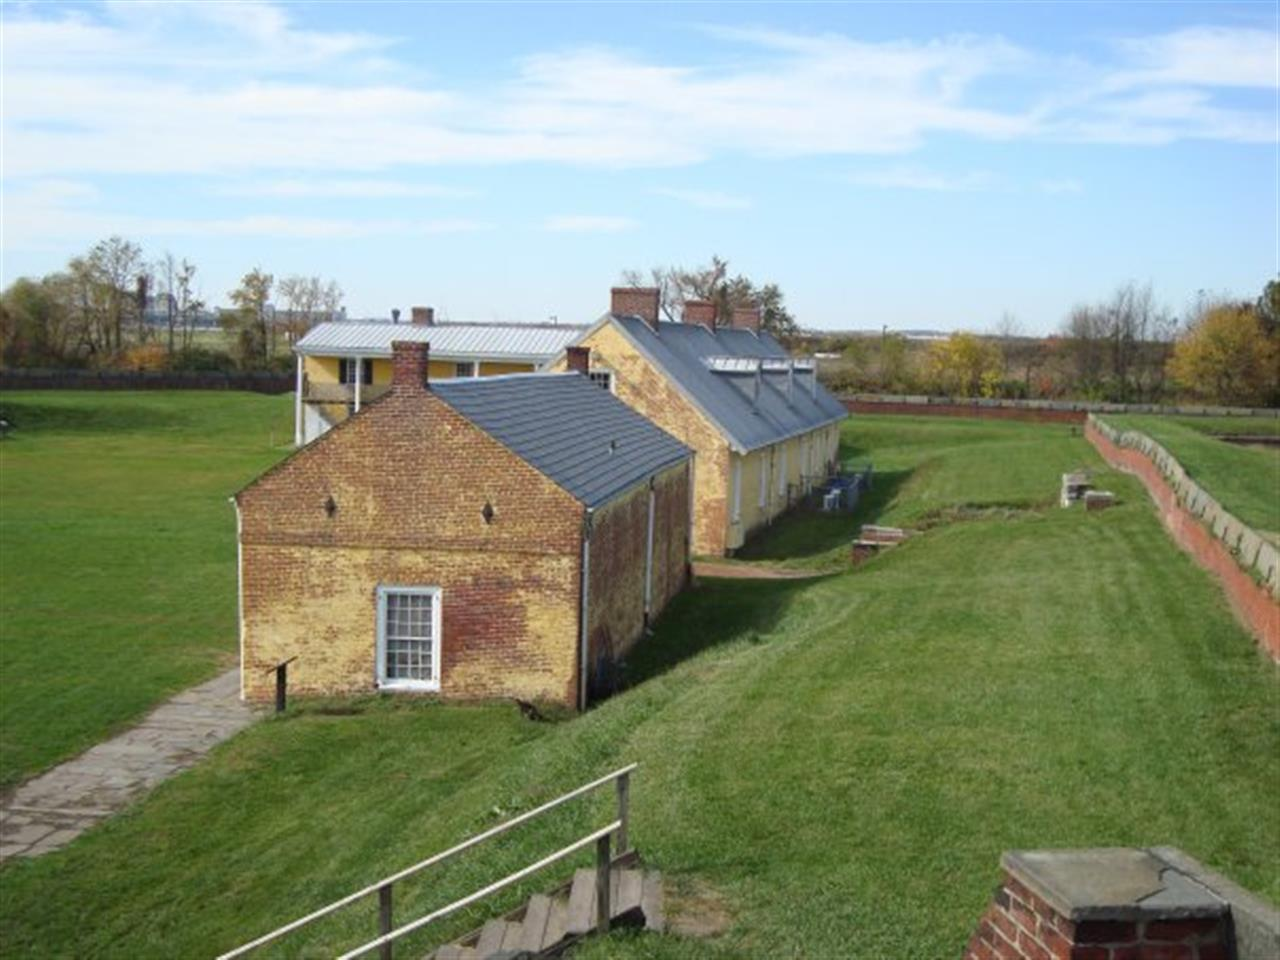 Fort Mifflin Historical Site 6400 Hog Island Rd, Philadelphia, PA 19153